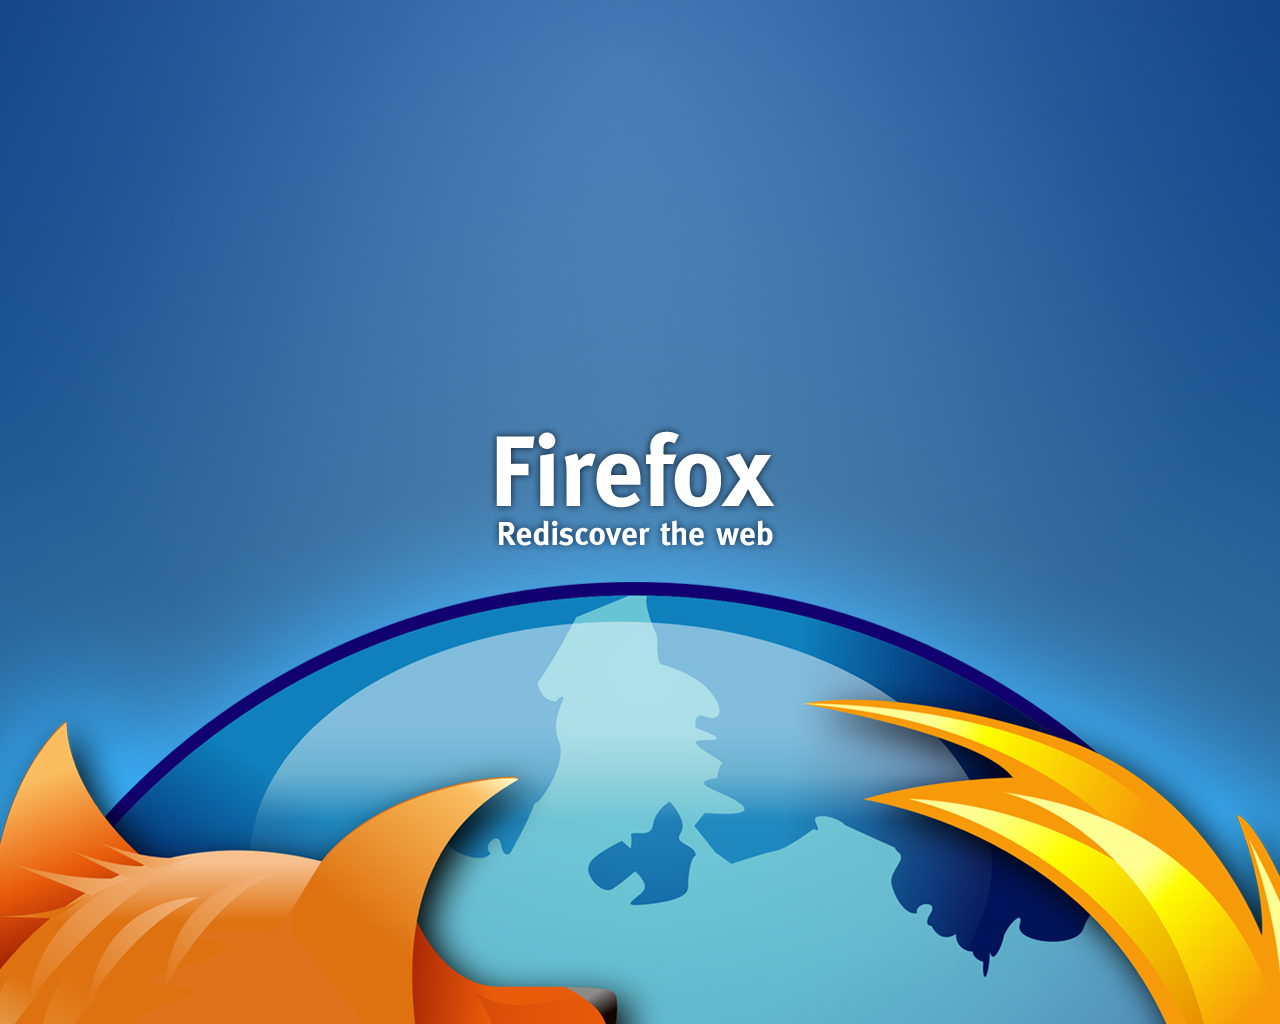 Firefox Glass 232.42 Kb